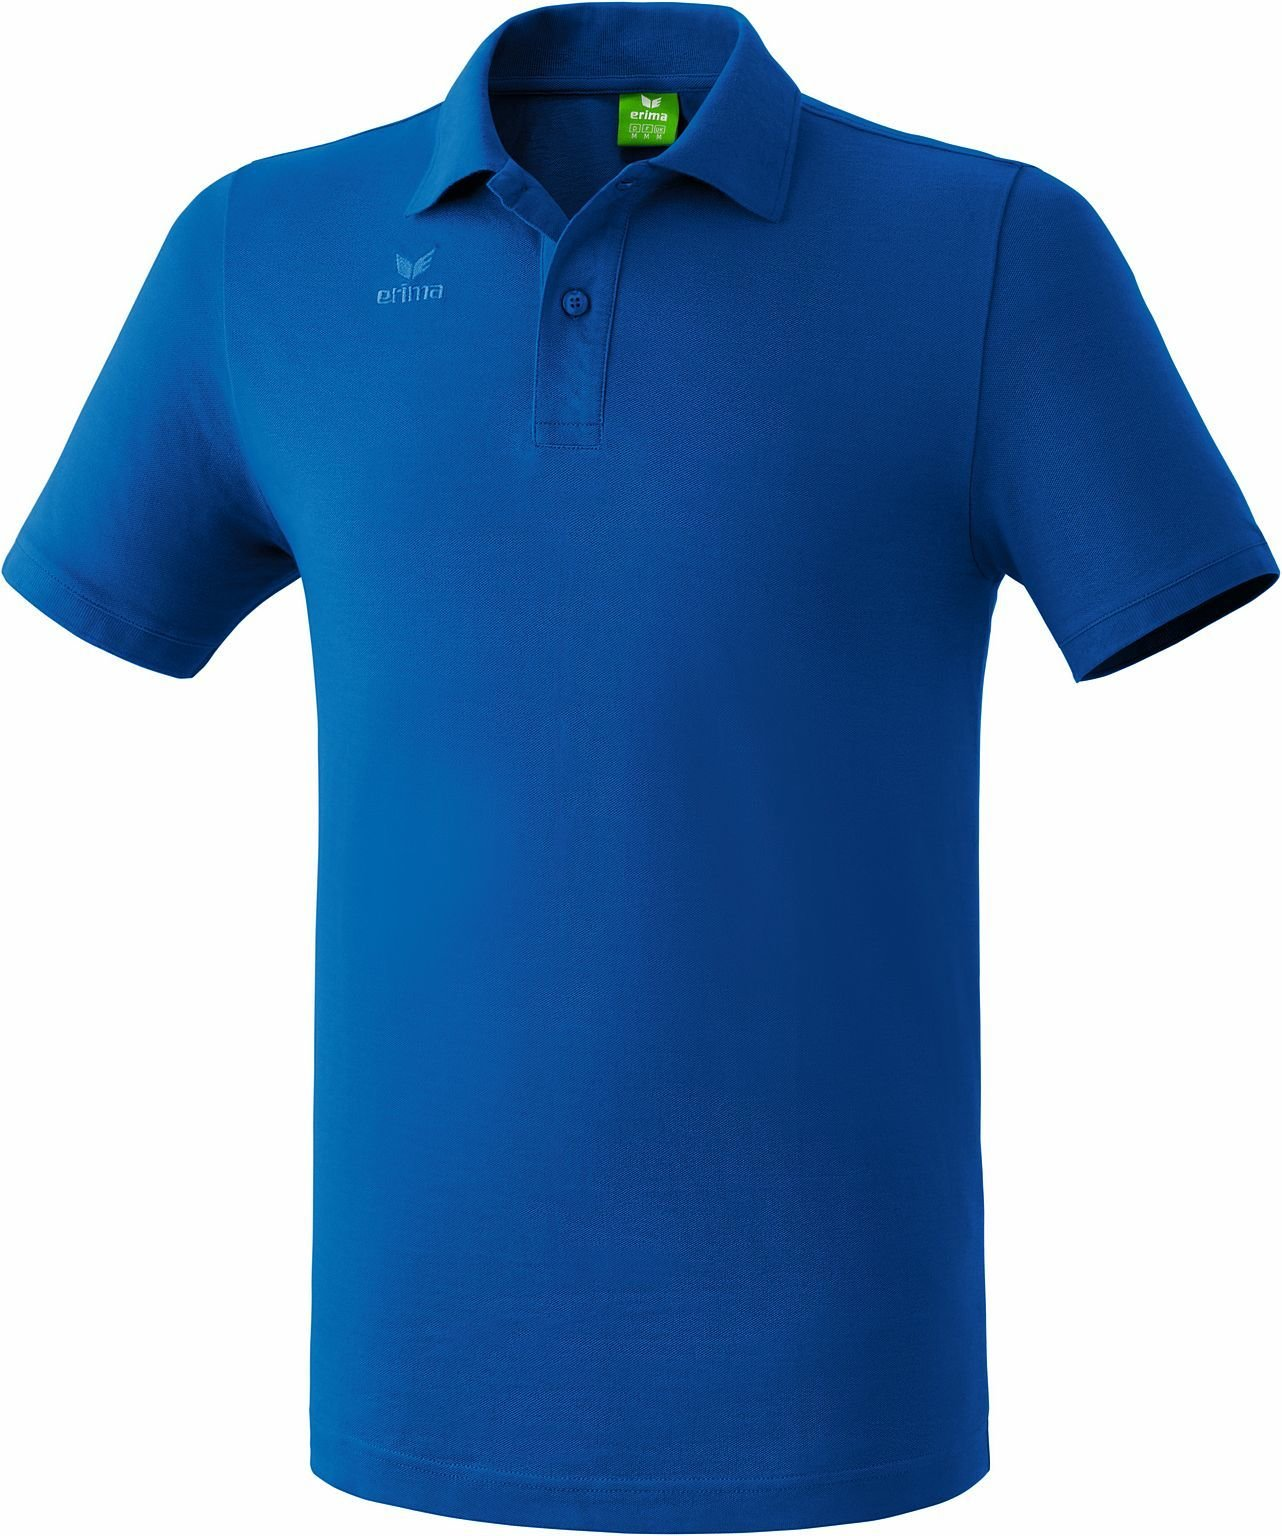 Teamsport Poloshirt Kinder